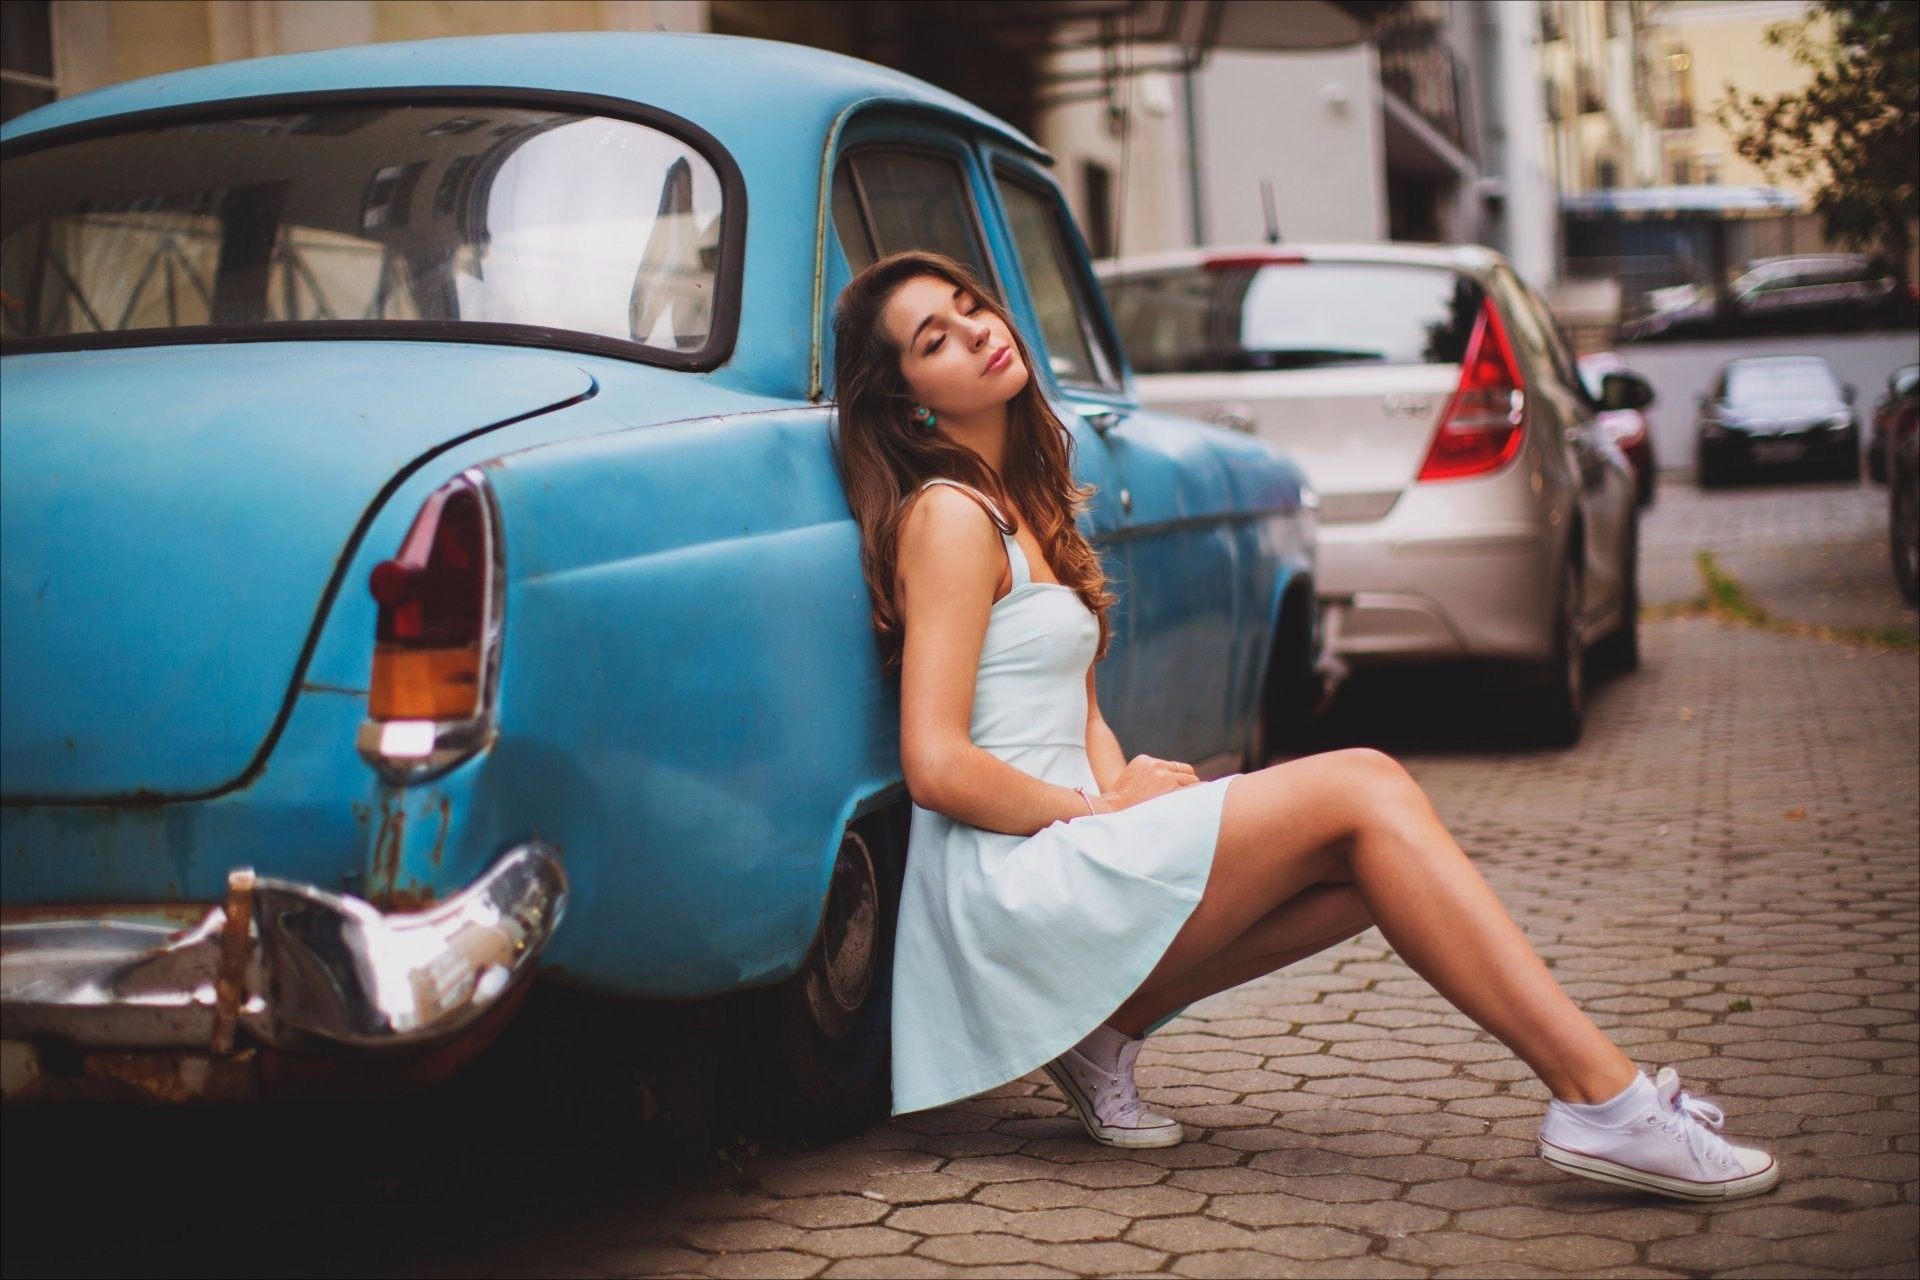 model with classic car 2 | girls hd 4k wallpapers